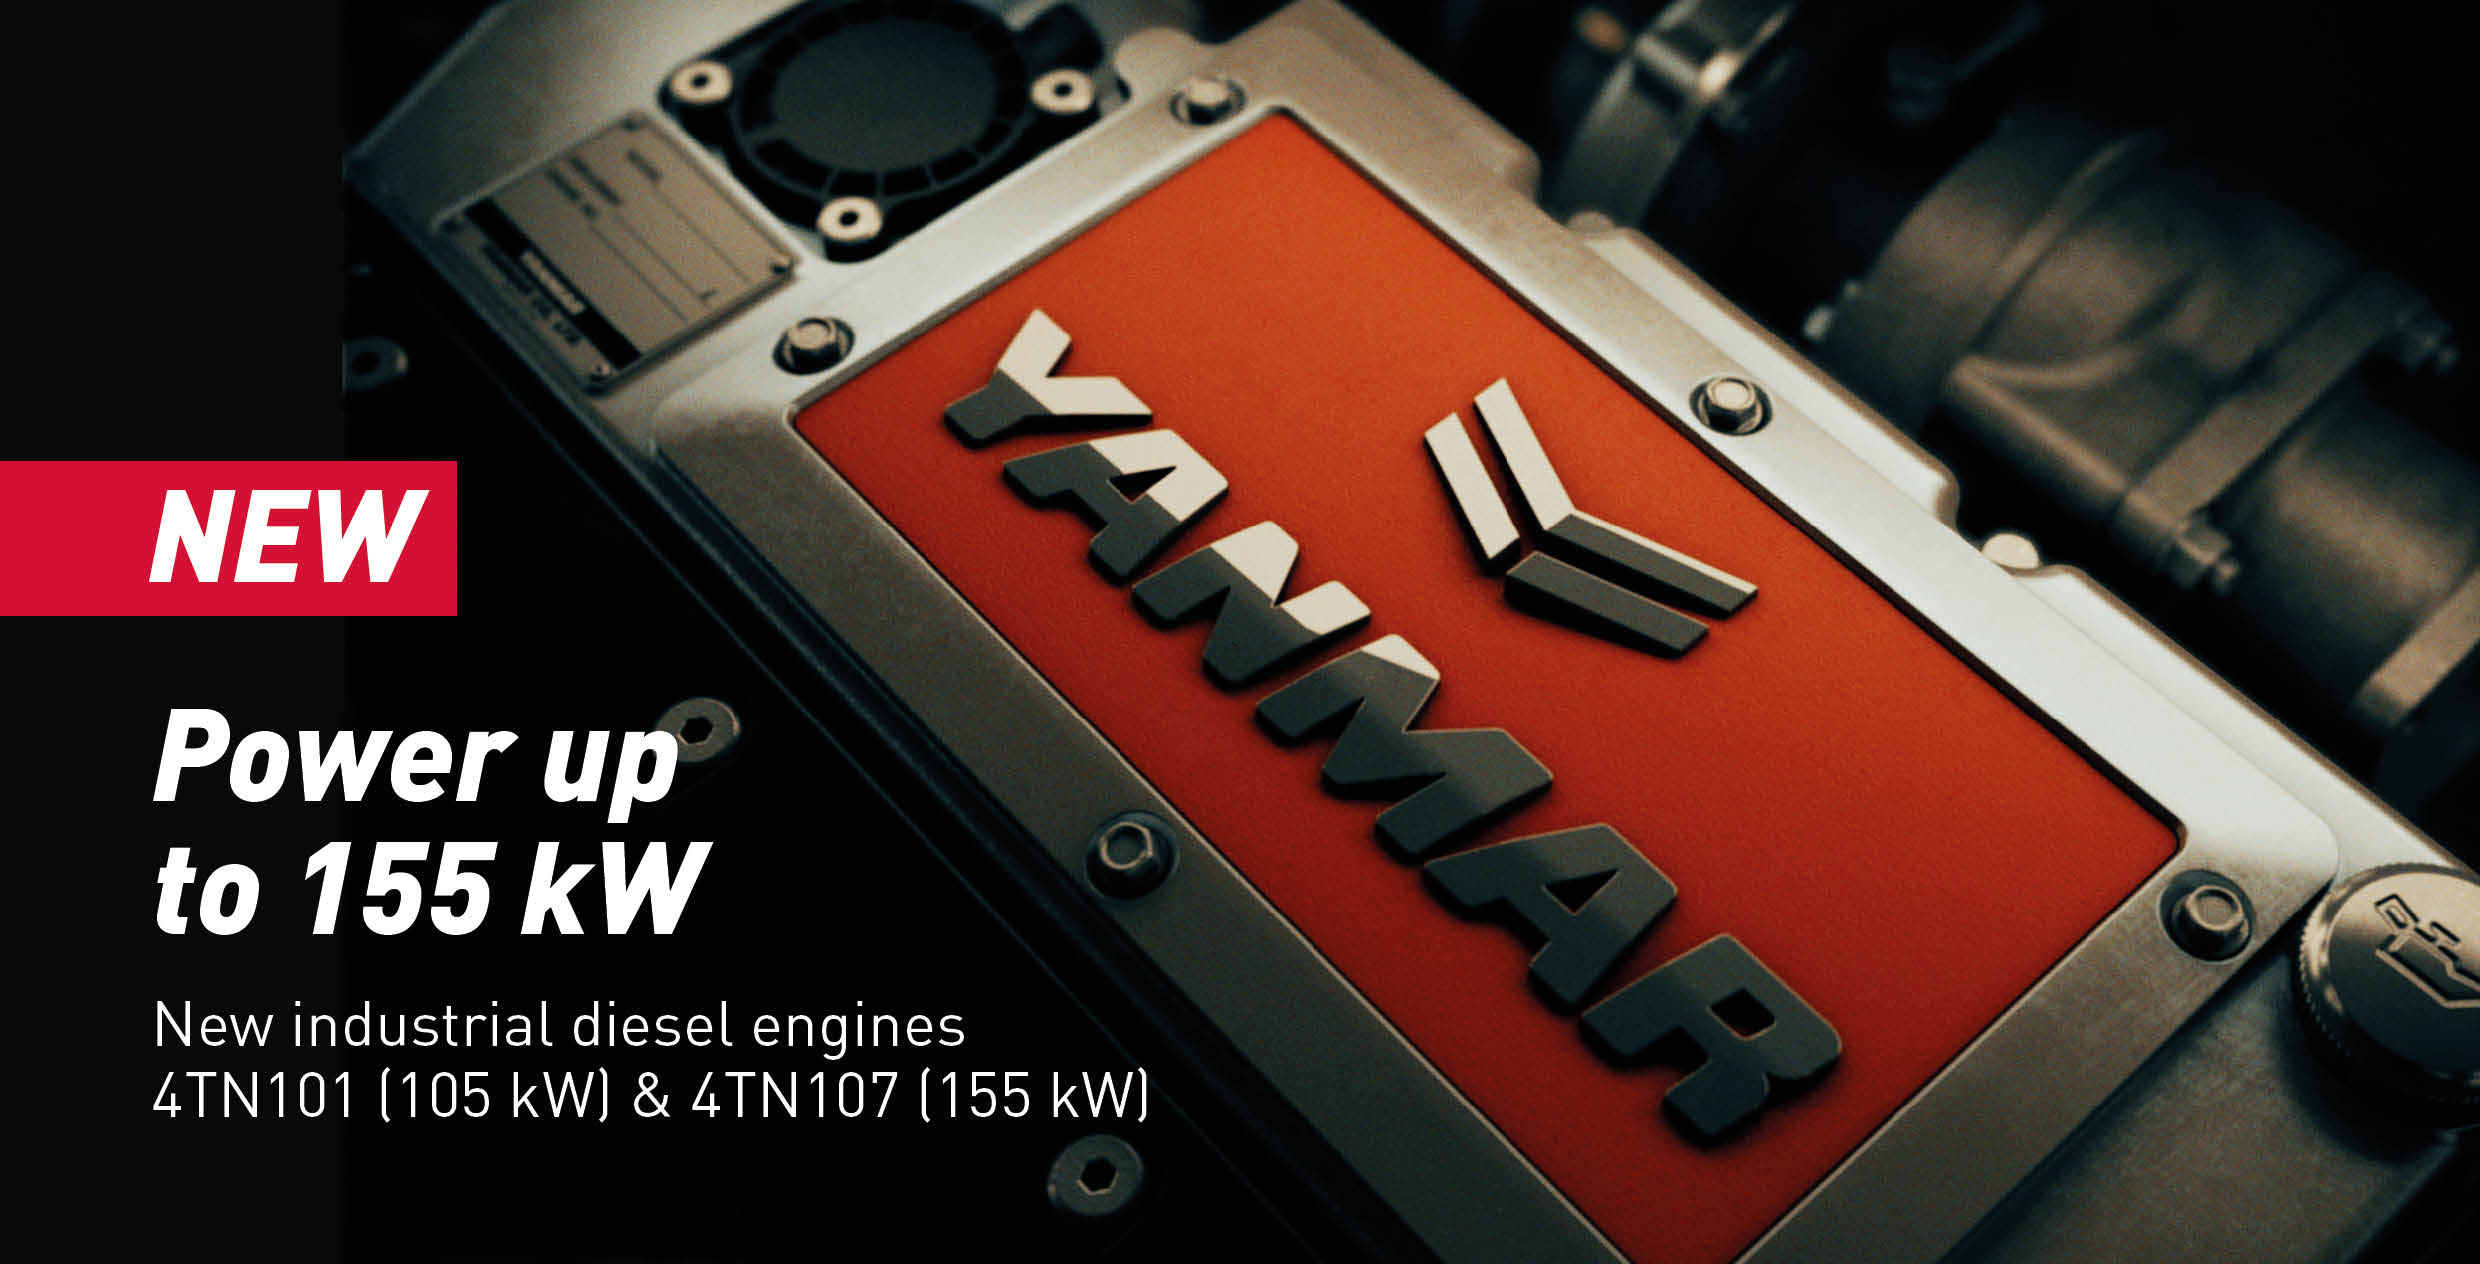 Yanmar extends its engine line up to 155 kW - Yanmar Europe